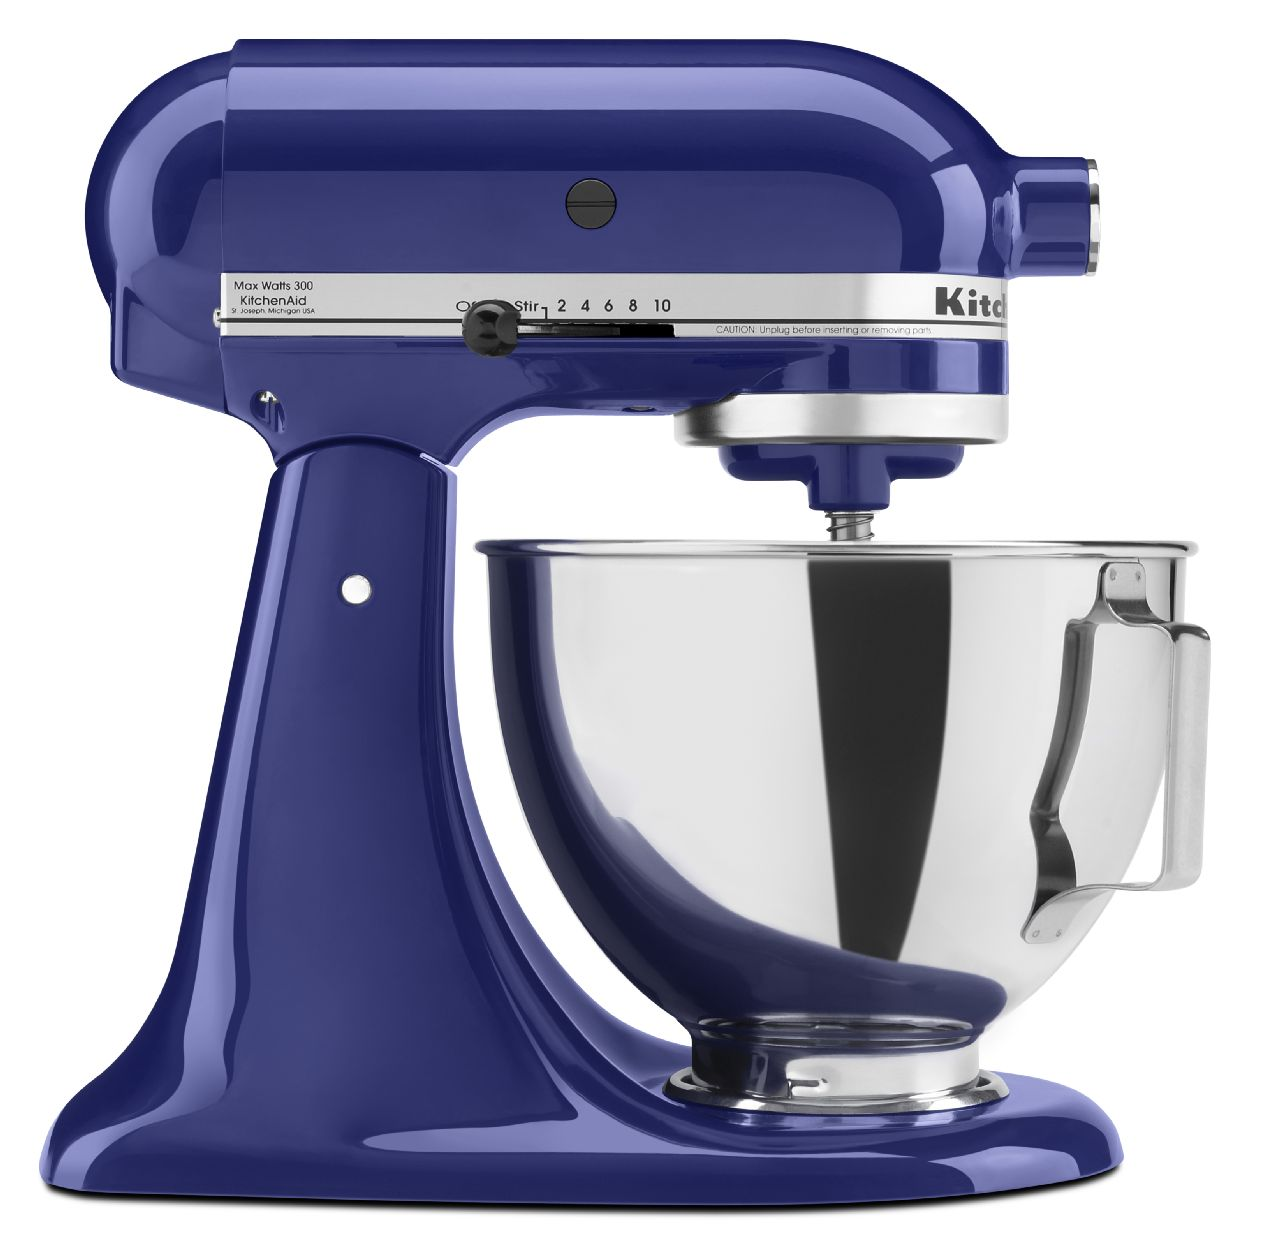 KitchenAid-4-5-quart-Tilt-Head-Stand-Mixer-with-Flex-Edge-Beater-KSM85PSQ thumbnail 3